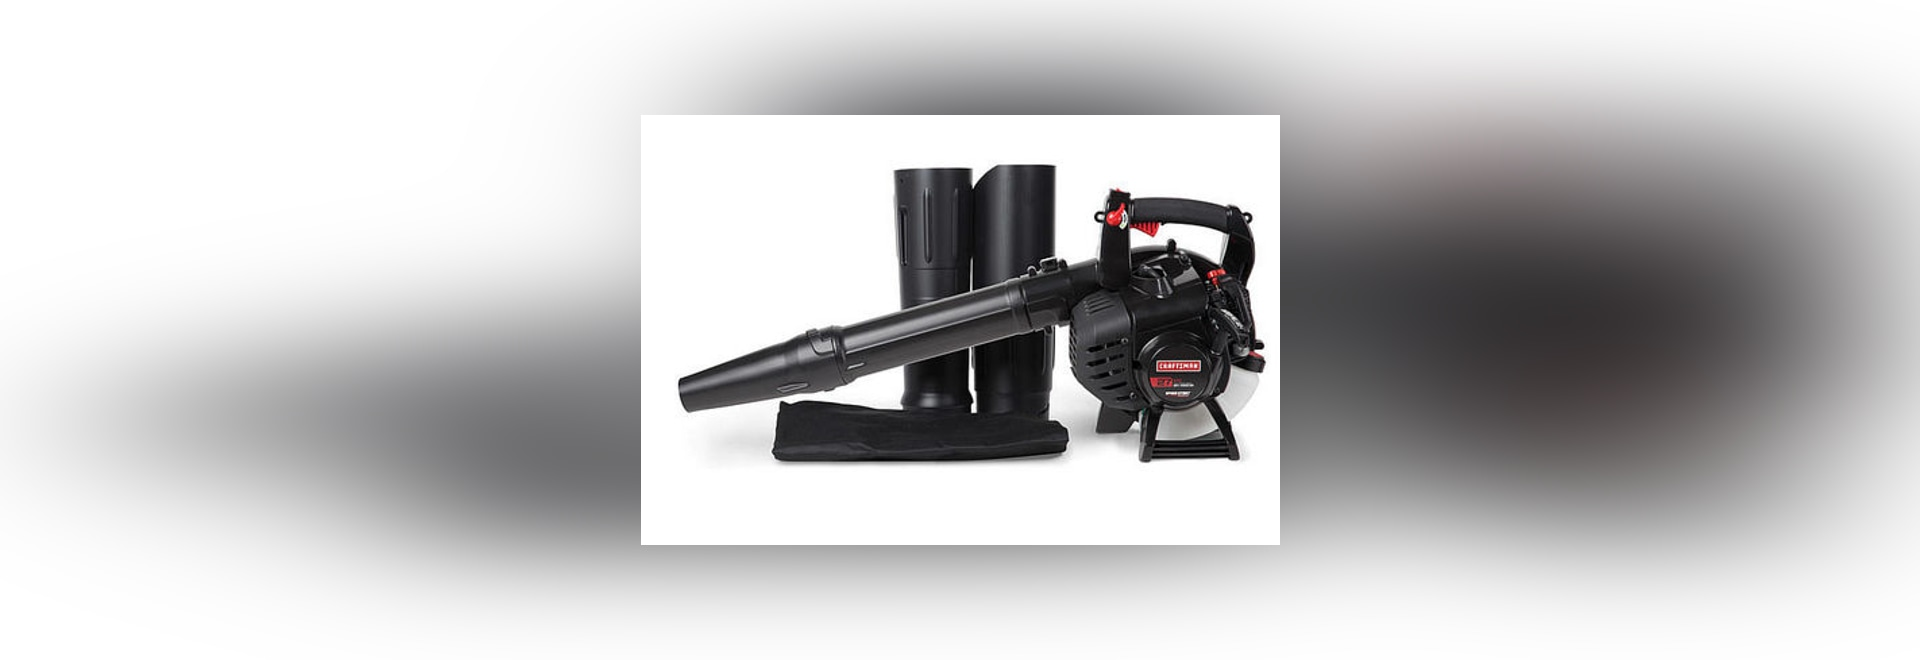 NEW: gas blower by Craftsman.